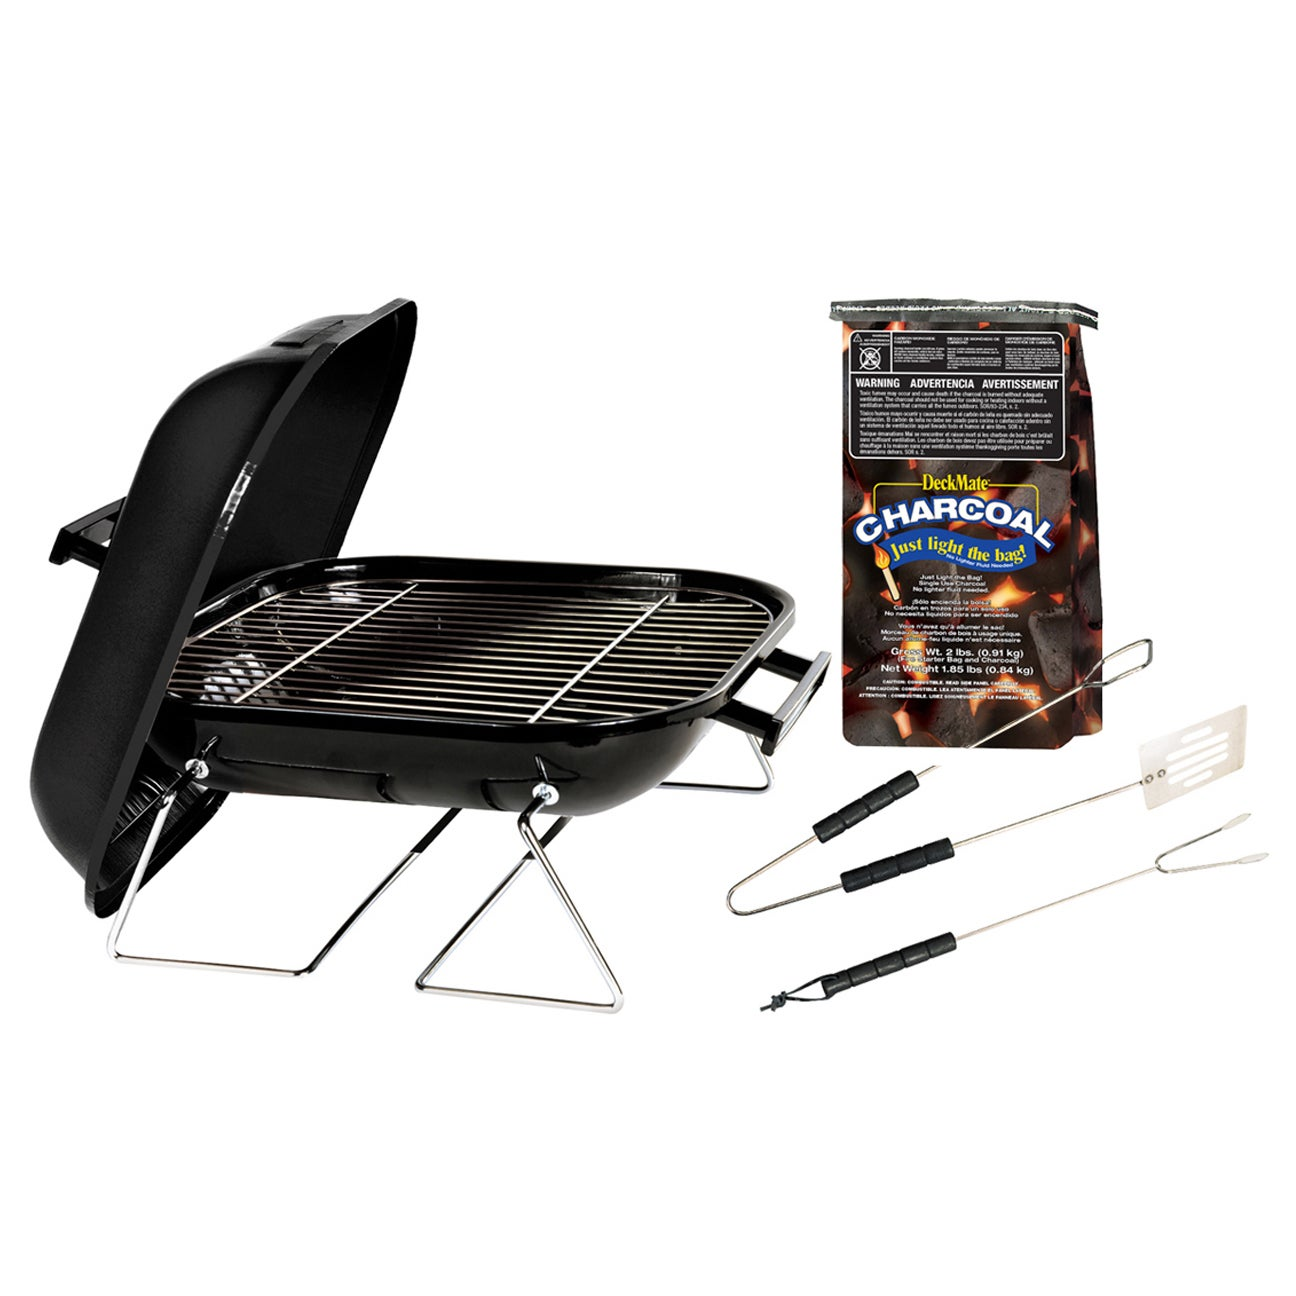 Kay Home 30103 14-inch Tabletop Charcoal Grill With Charc...